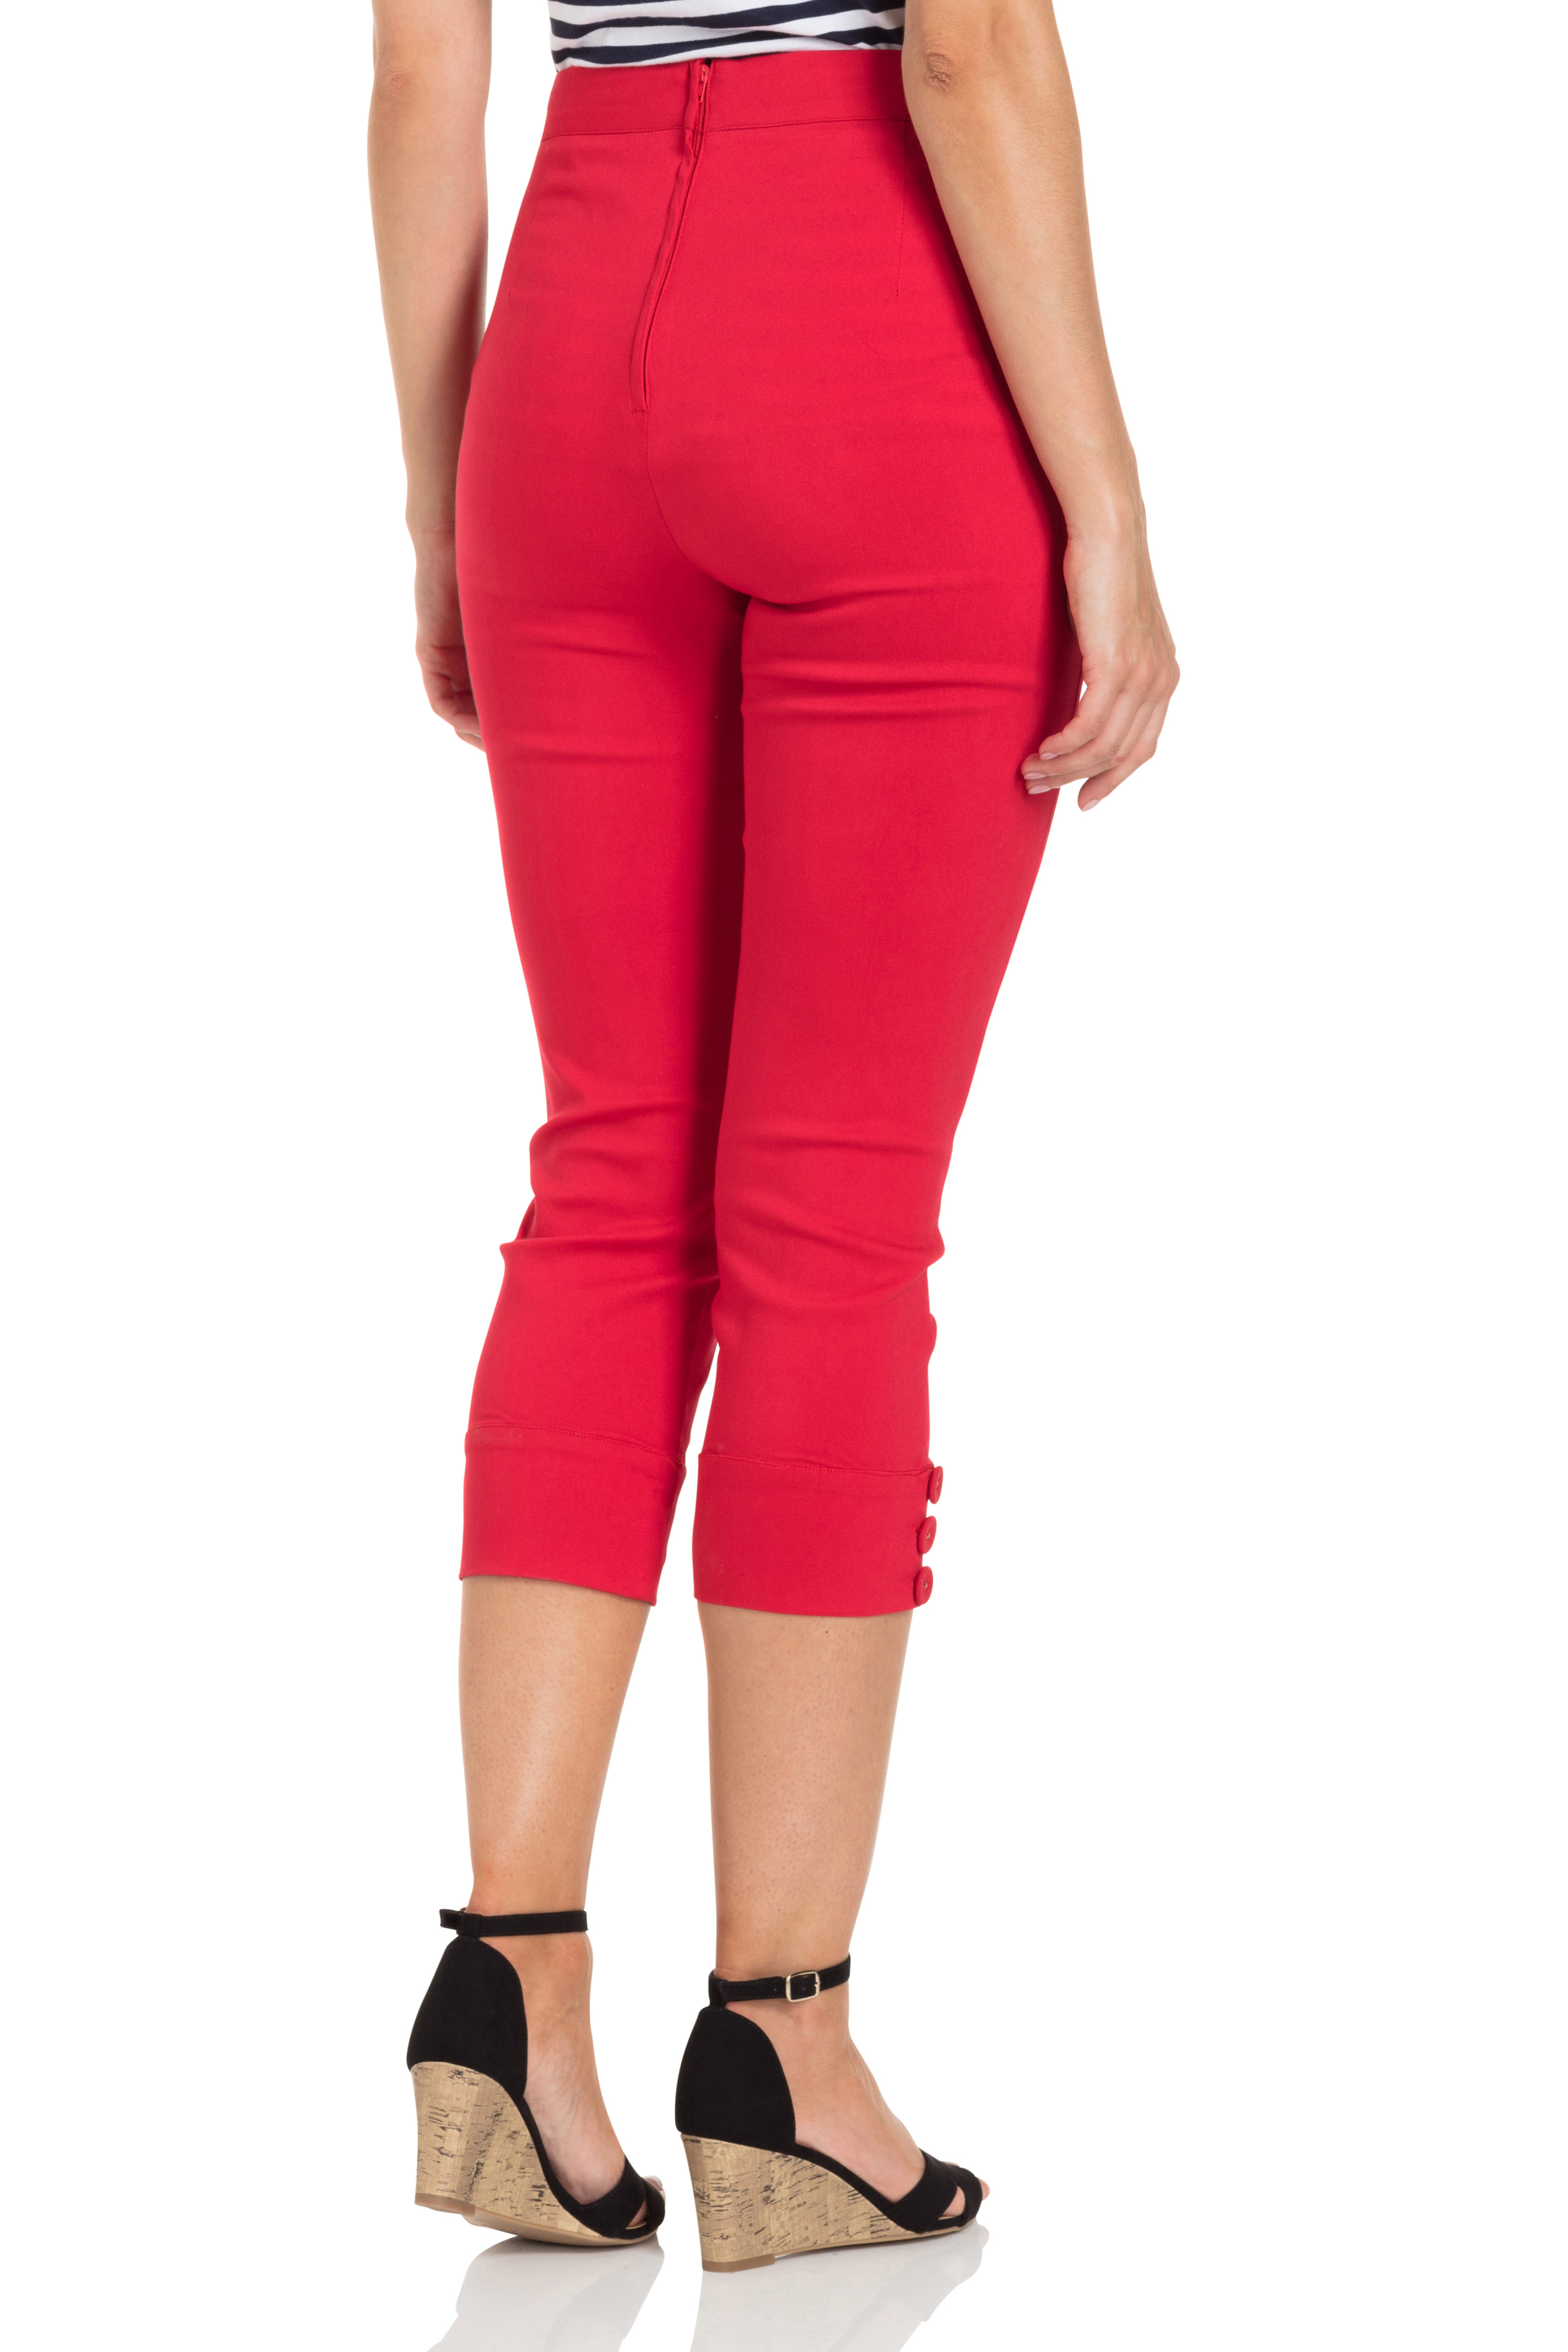 Holly Red Capri Pants